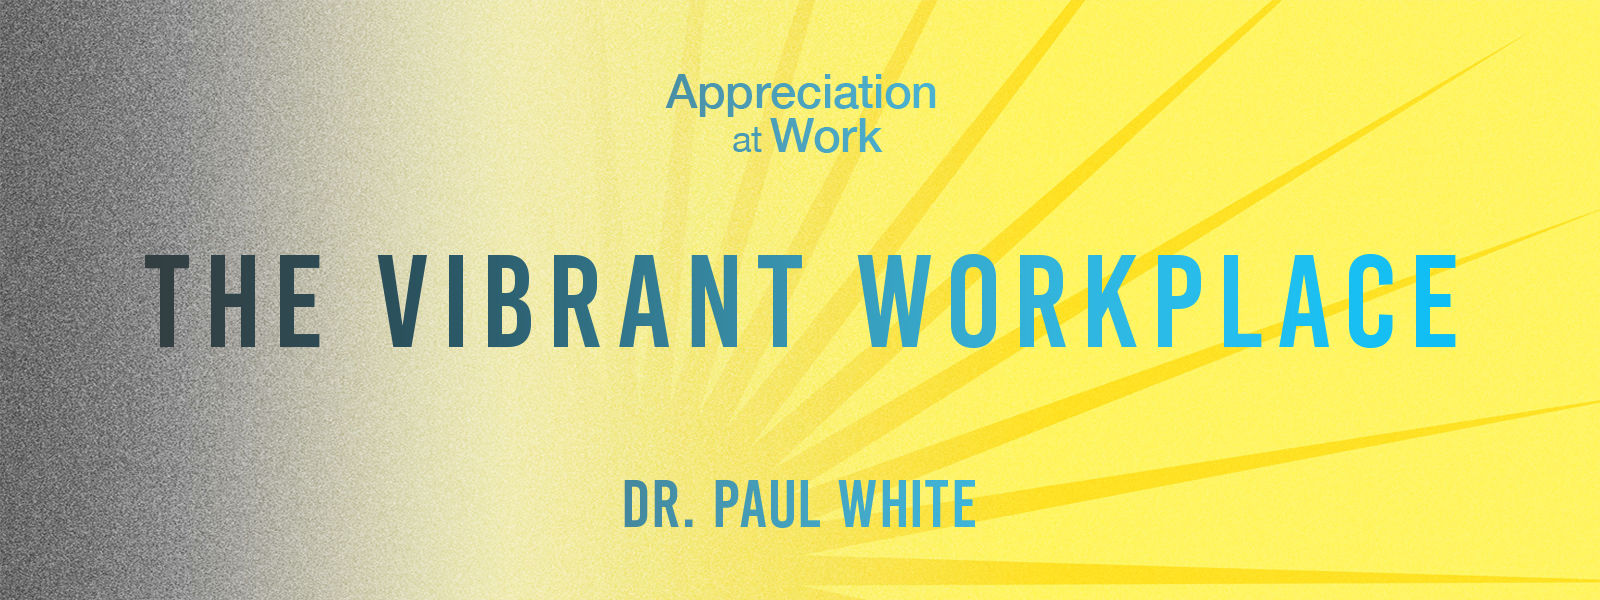 The Vibrant Workplace: Overcoming the Challenges to Building a Culture of Appreciation